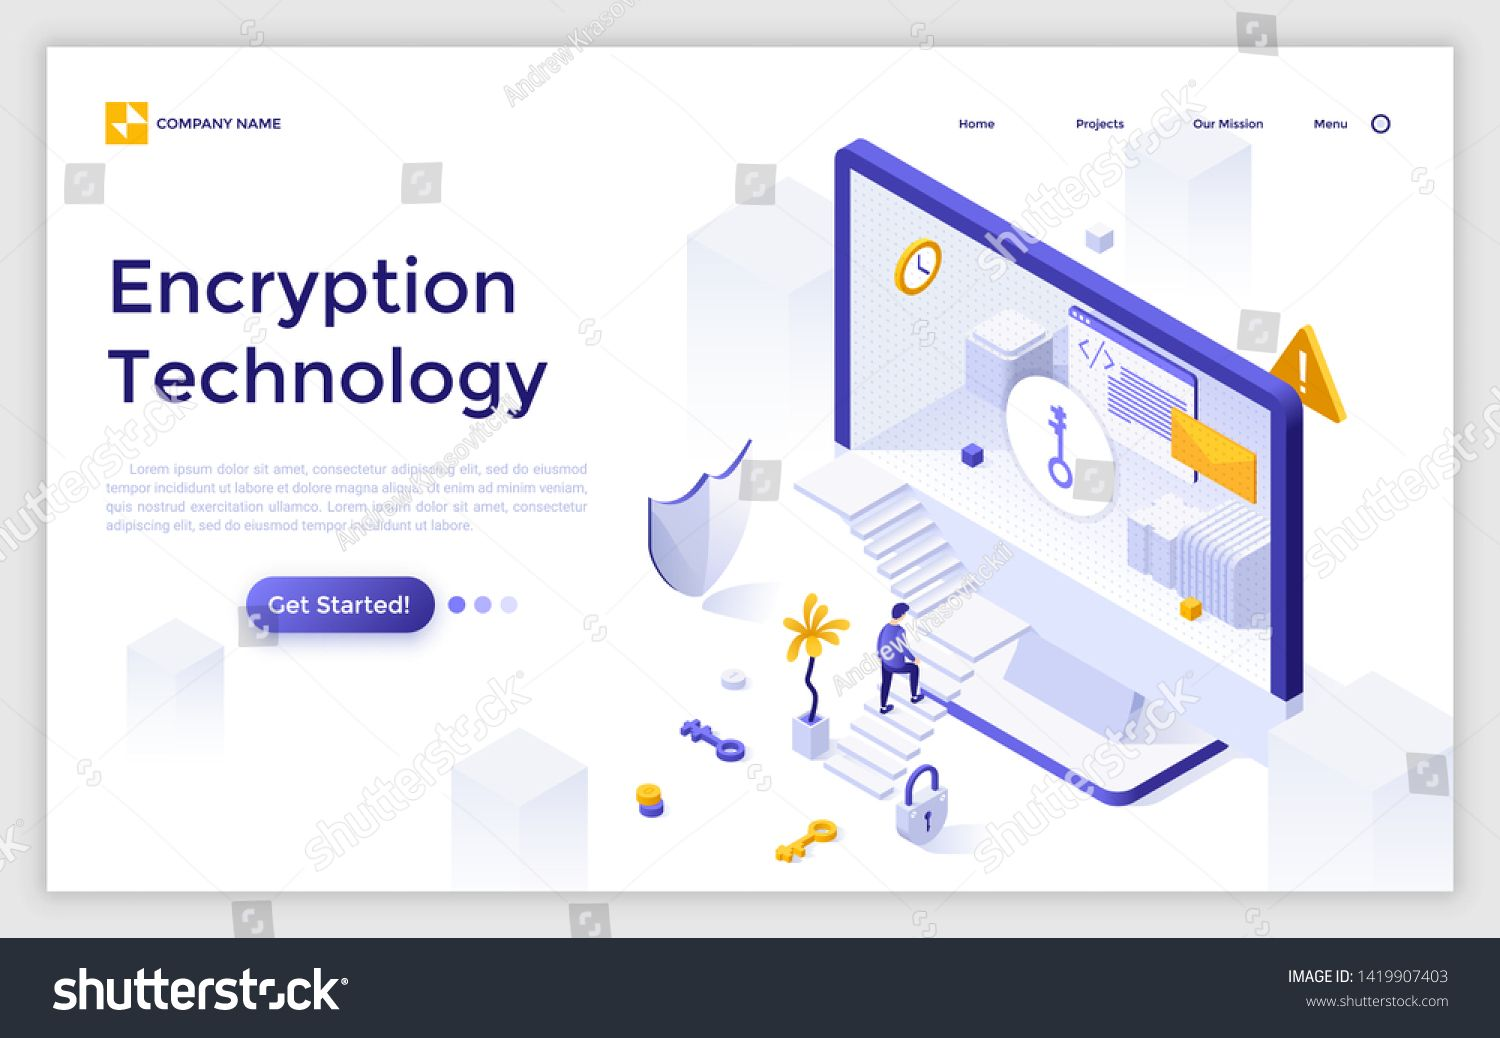 Landing page template with man ascending stairs to enter